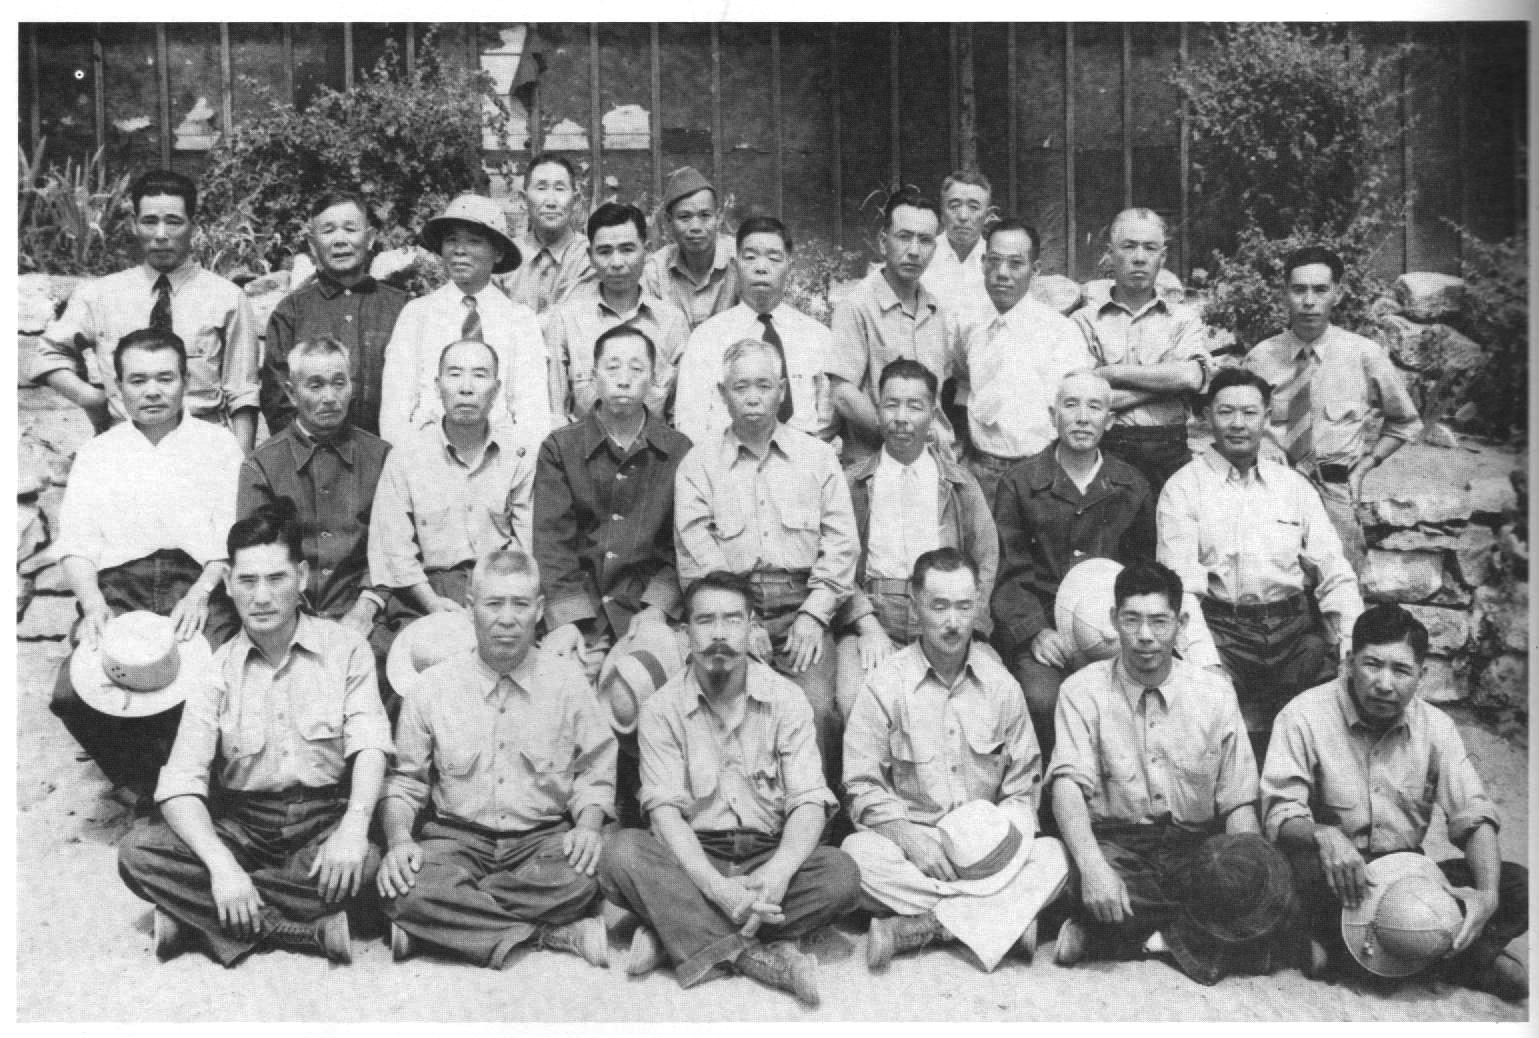 description of japanese internment camps Japanese american internment camps - was the internment of japanese americans a compulsory act of justice or was it an unwarranted, redundant act of tyranny which breached upon the rights of japanese americans.